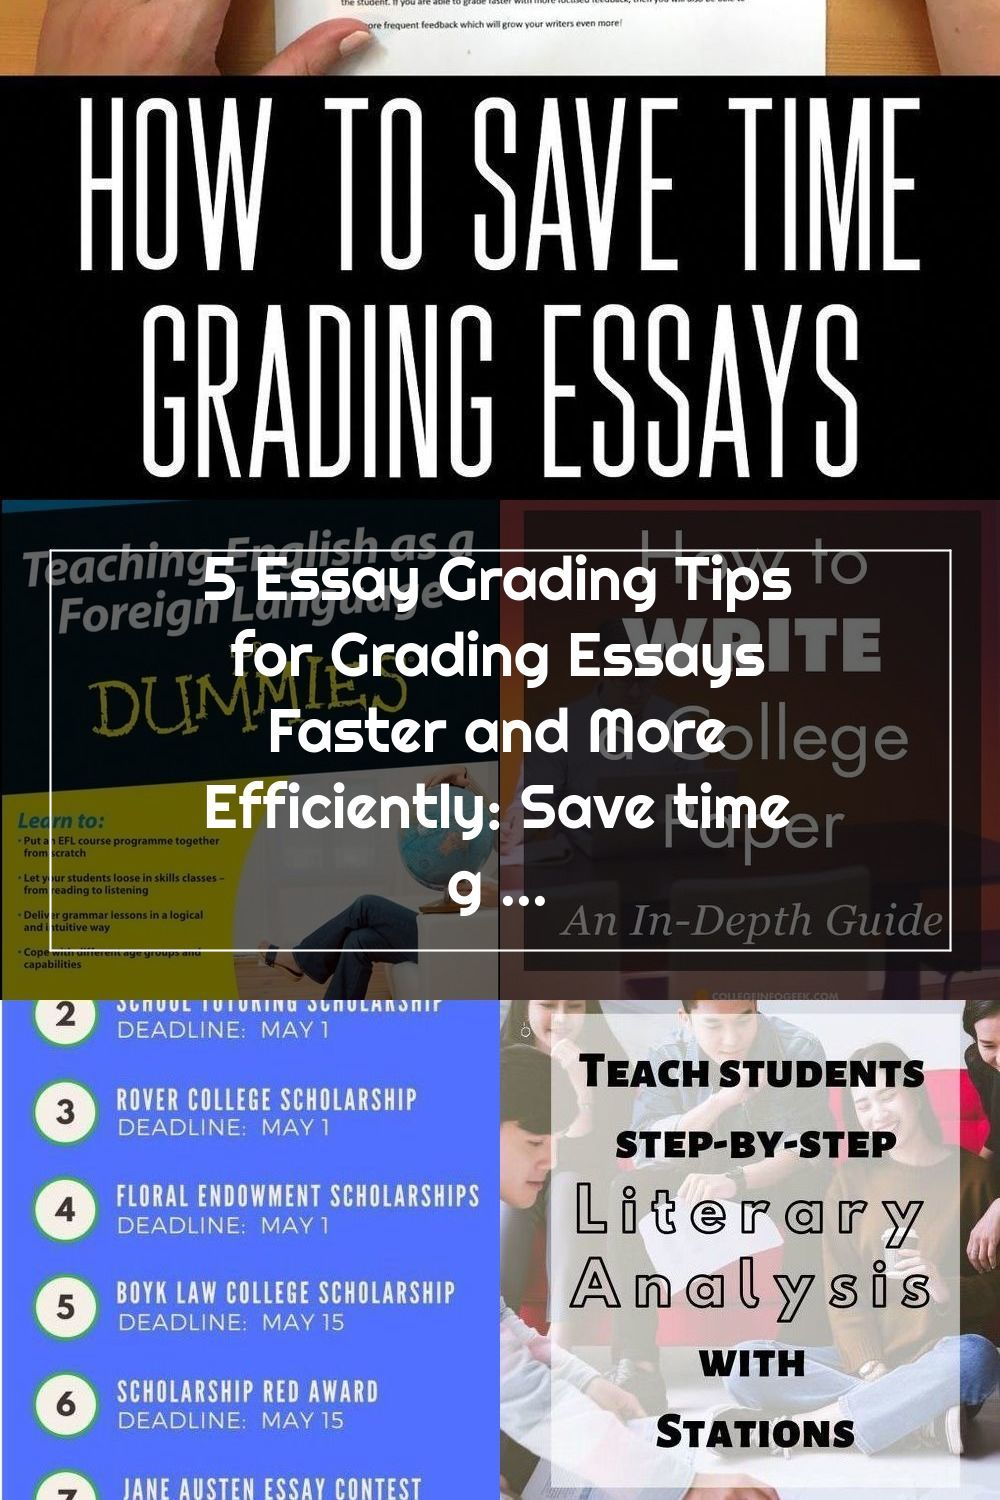 Building Book Love 5 Essay Grading Tips For Grading Essays Faster And More Efficiently Save Time Grading Essays Online Or In Print Onlineschools Webcourses Em 2020